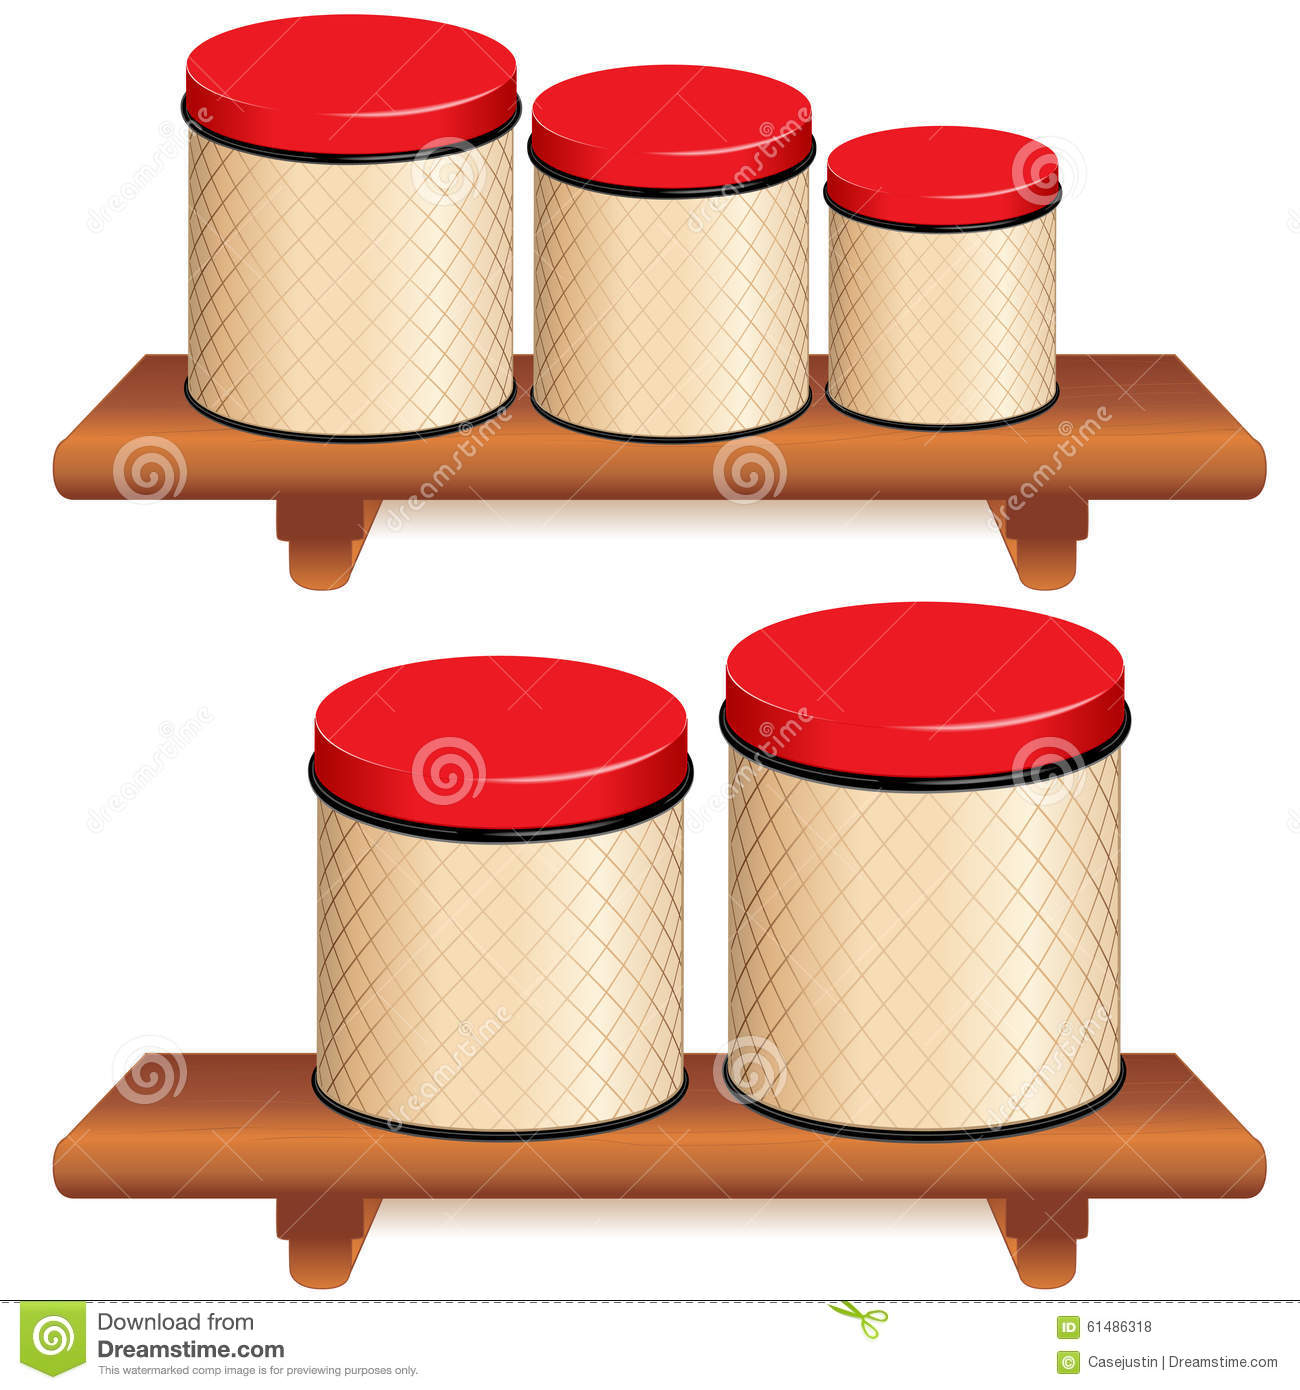 Large Kitchen Canisters Kitchen Canister Set On Wood Shelves Stock Vector Image